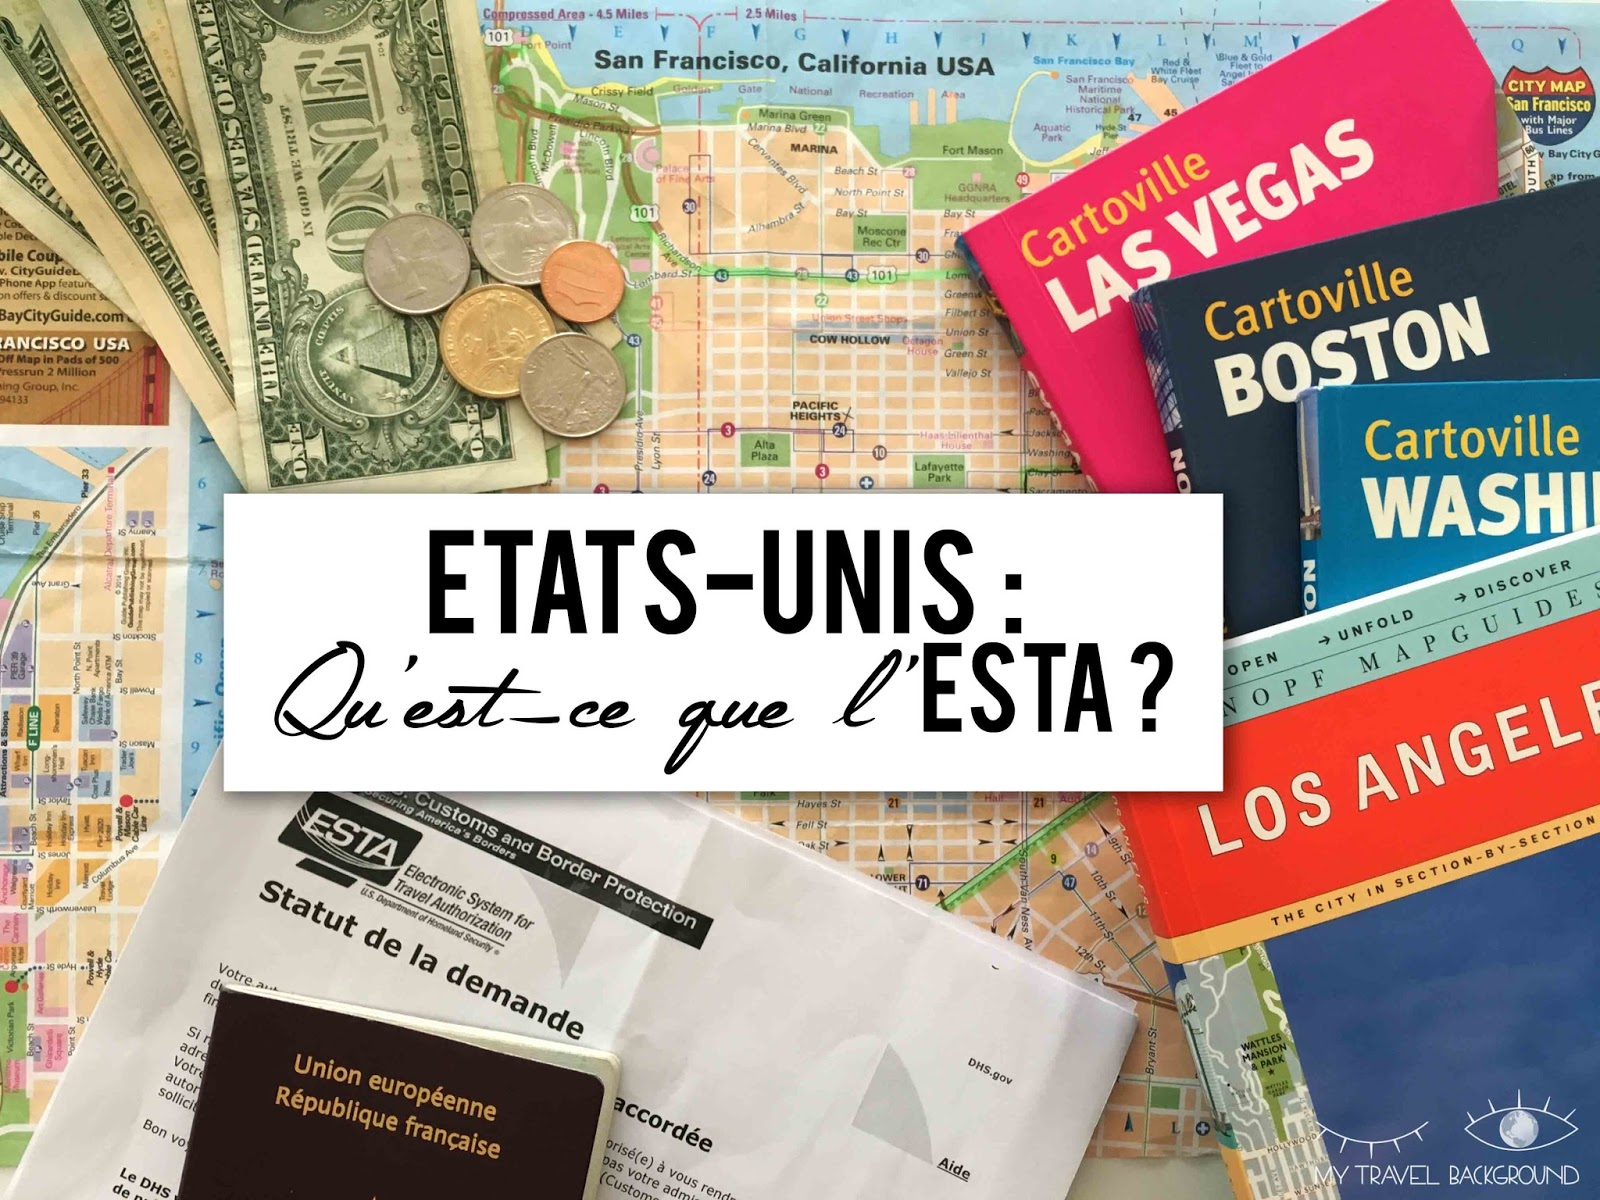 My Travel Background : Etats-Unis, qu'est-ce que l'ESTA?